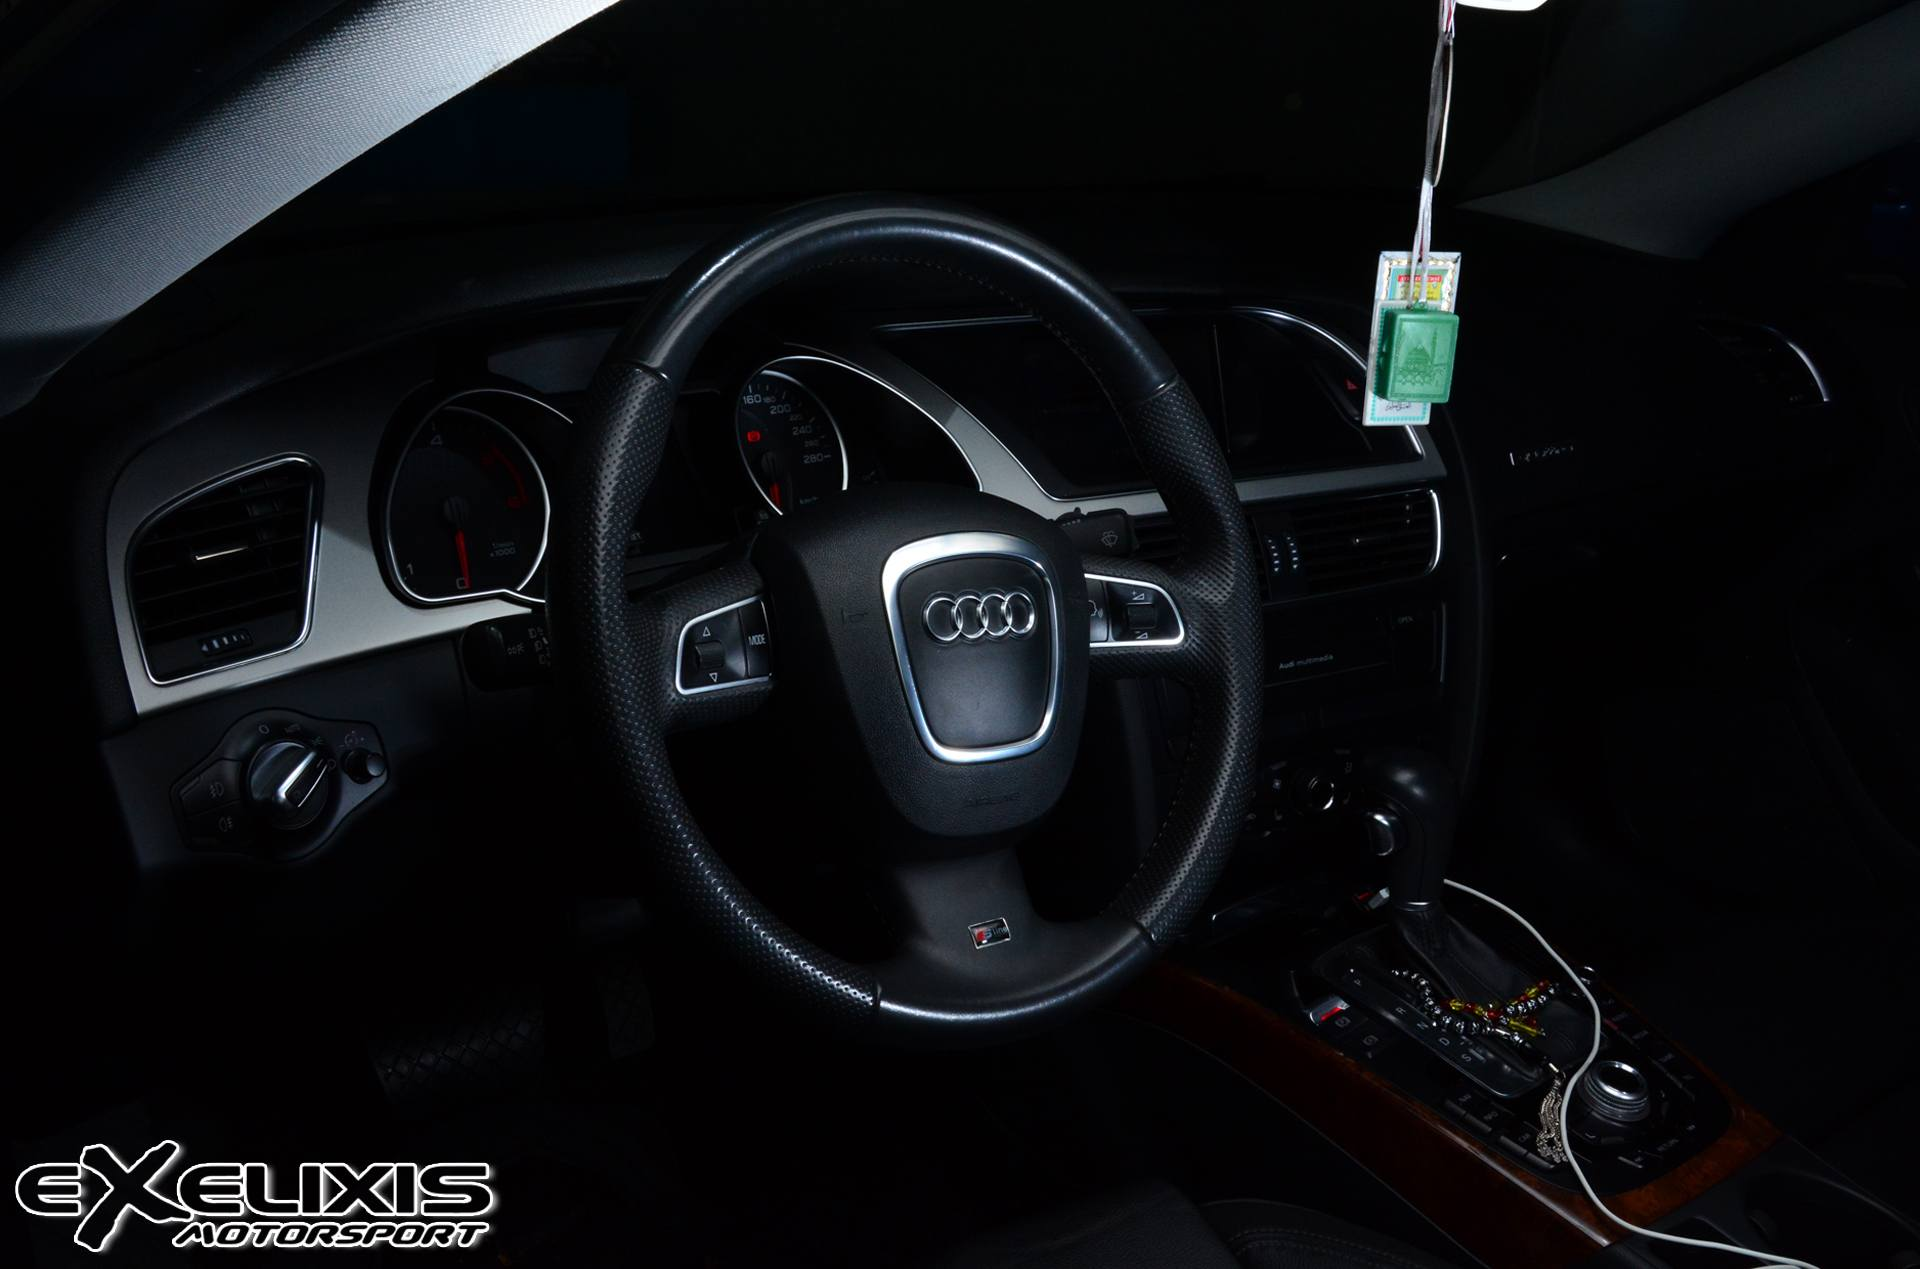 audi a5 3 0 tdi exelixis chiptuning. Black Bedroom Furniture Sets. Home Design Ideas